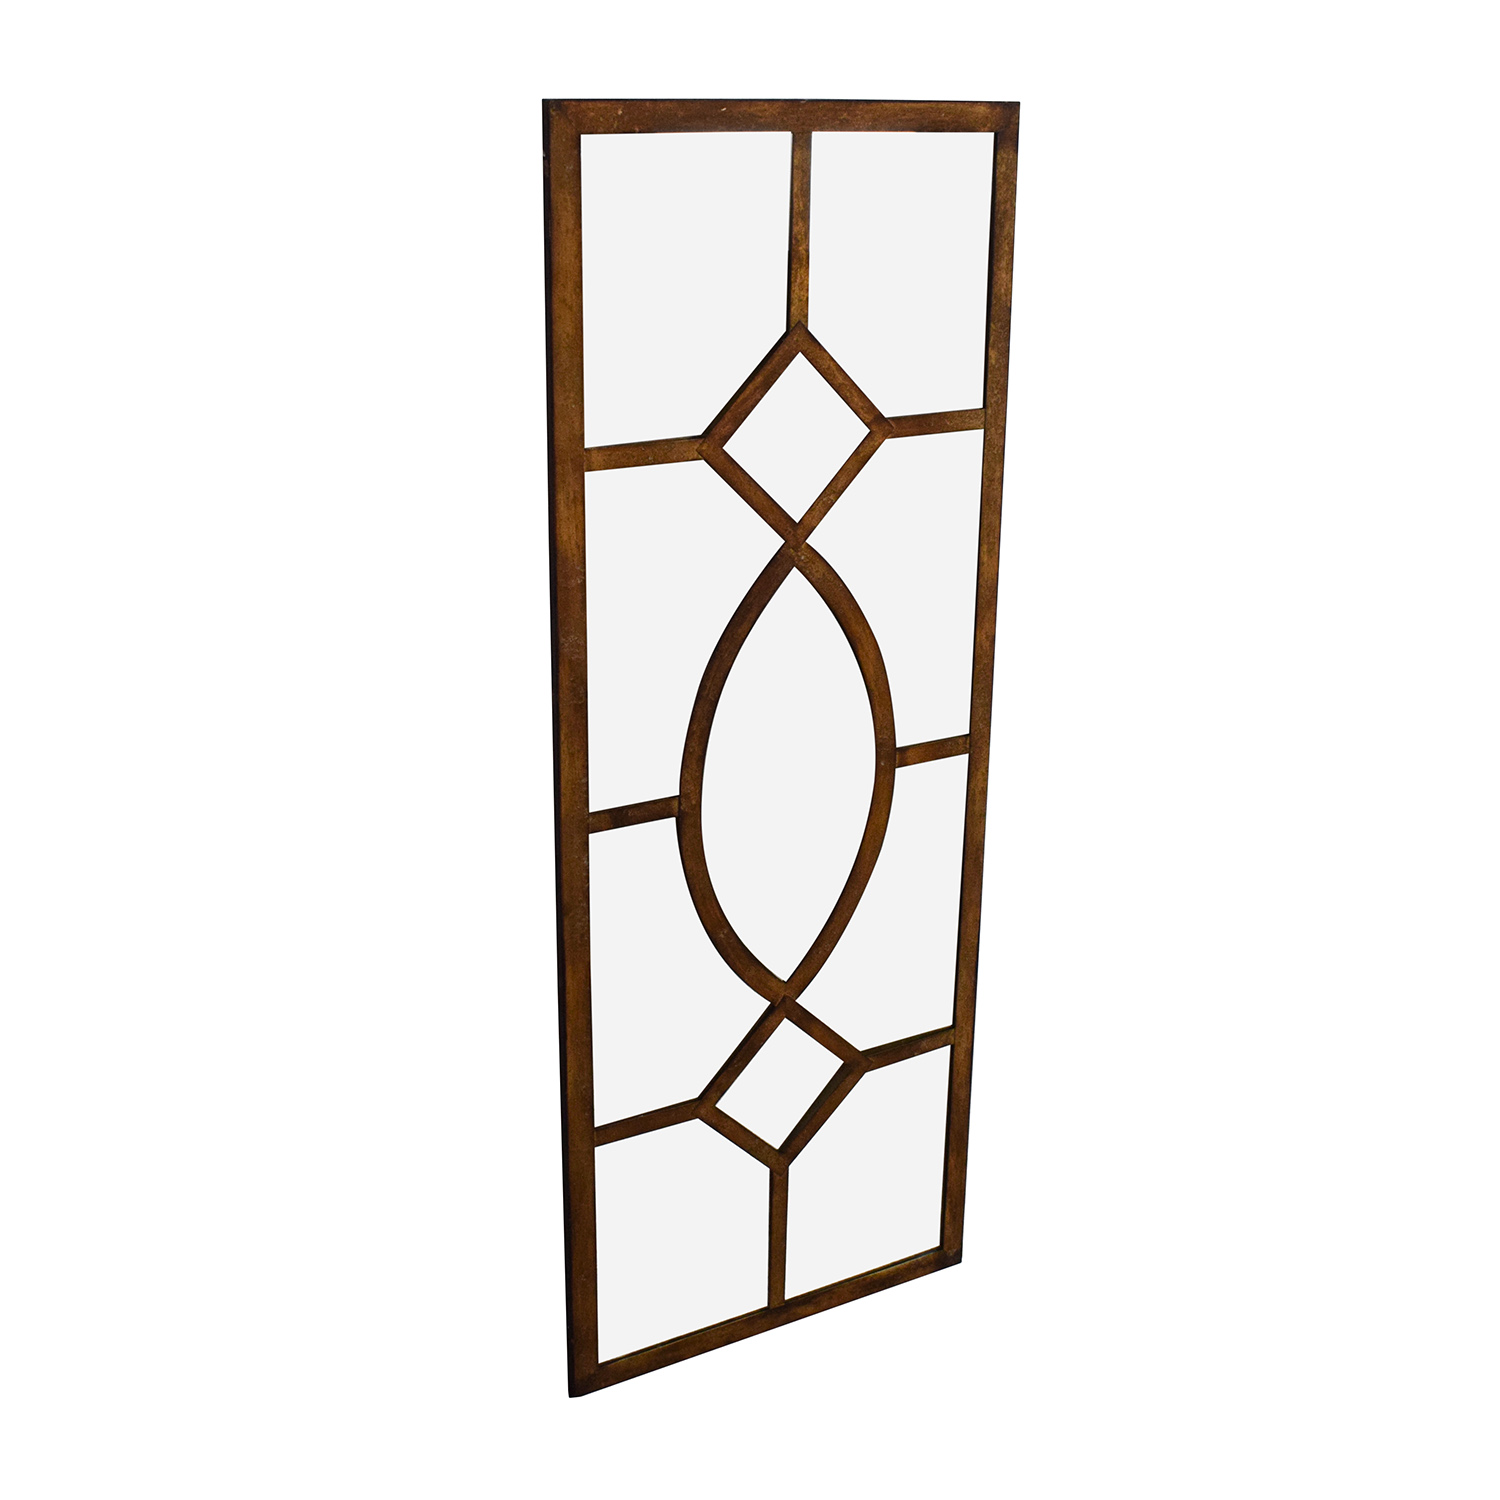 Pier 1 Imports Pier 1 Antiqued Wall Mirror on sale